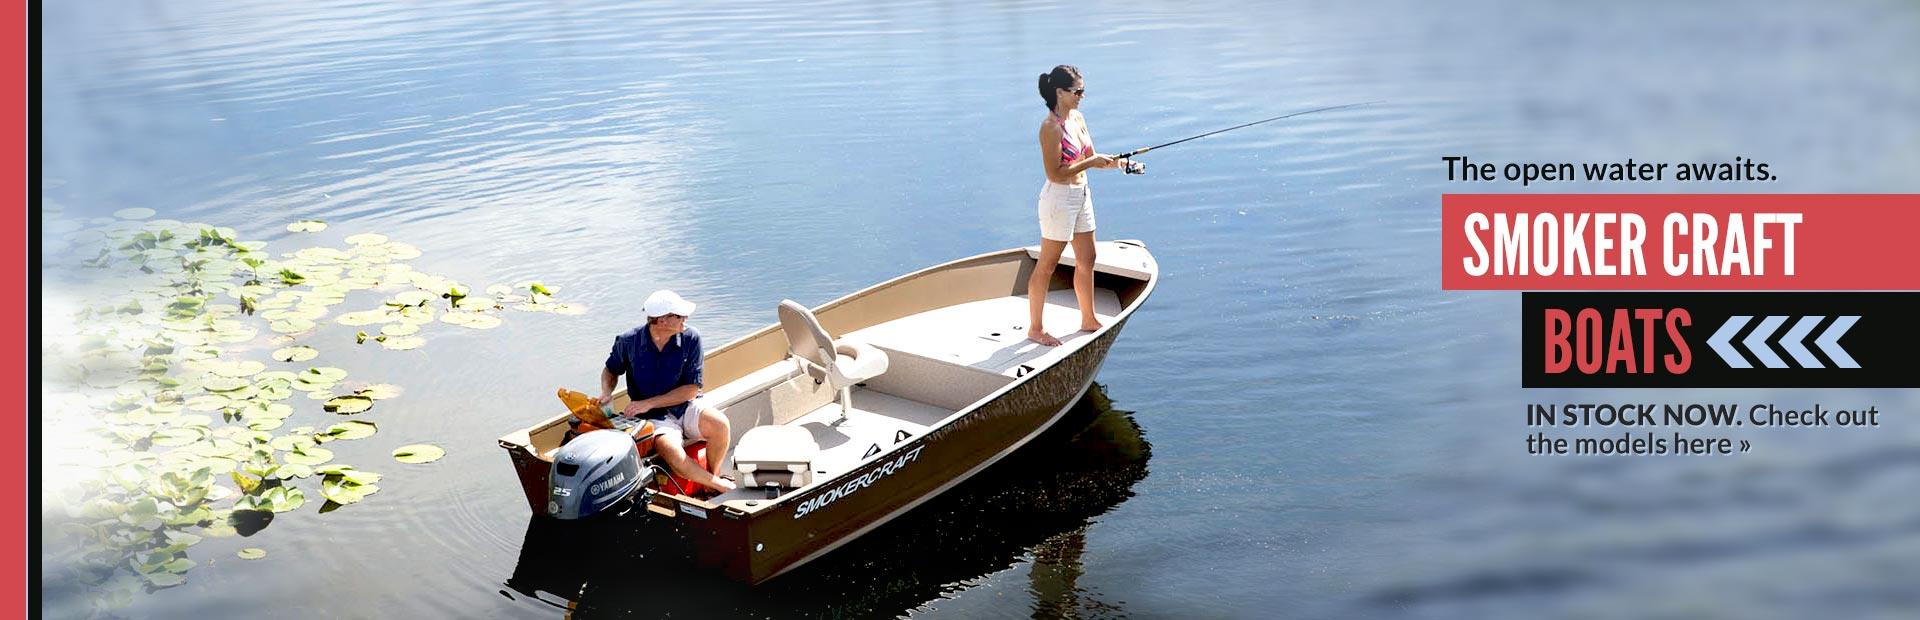 Click here to view our selection of Smoker Craft boats!